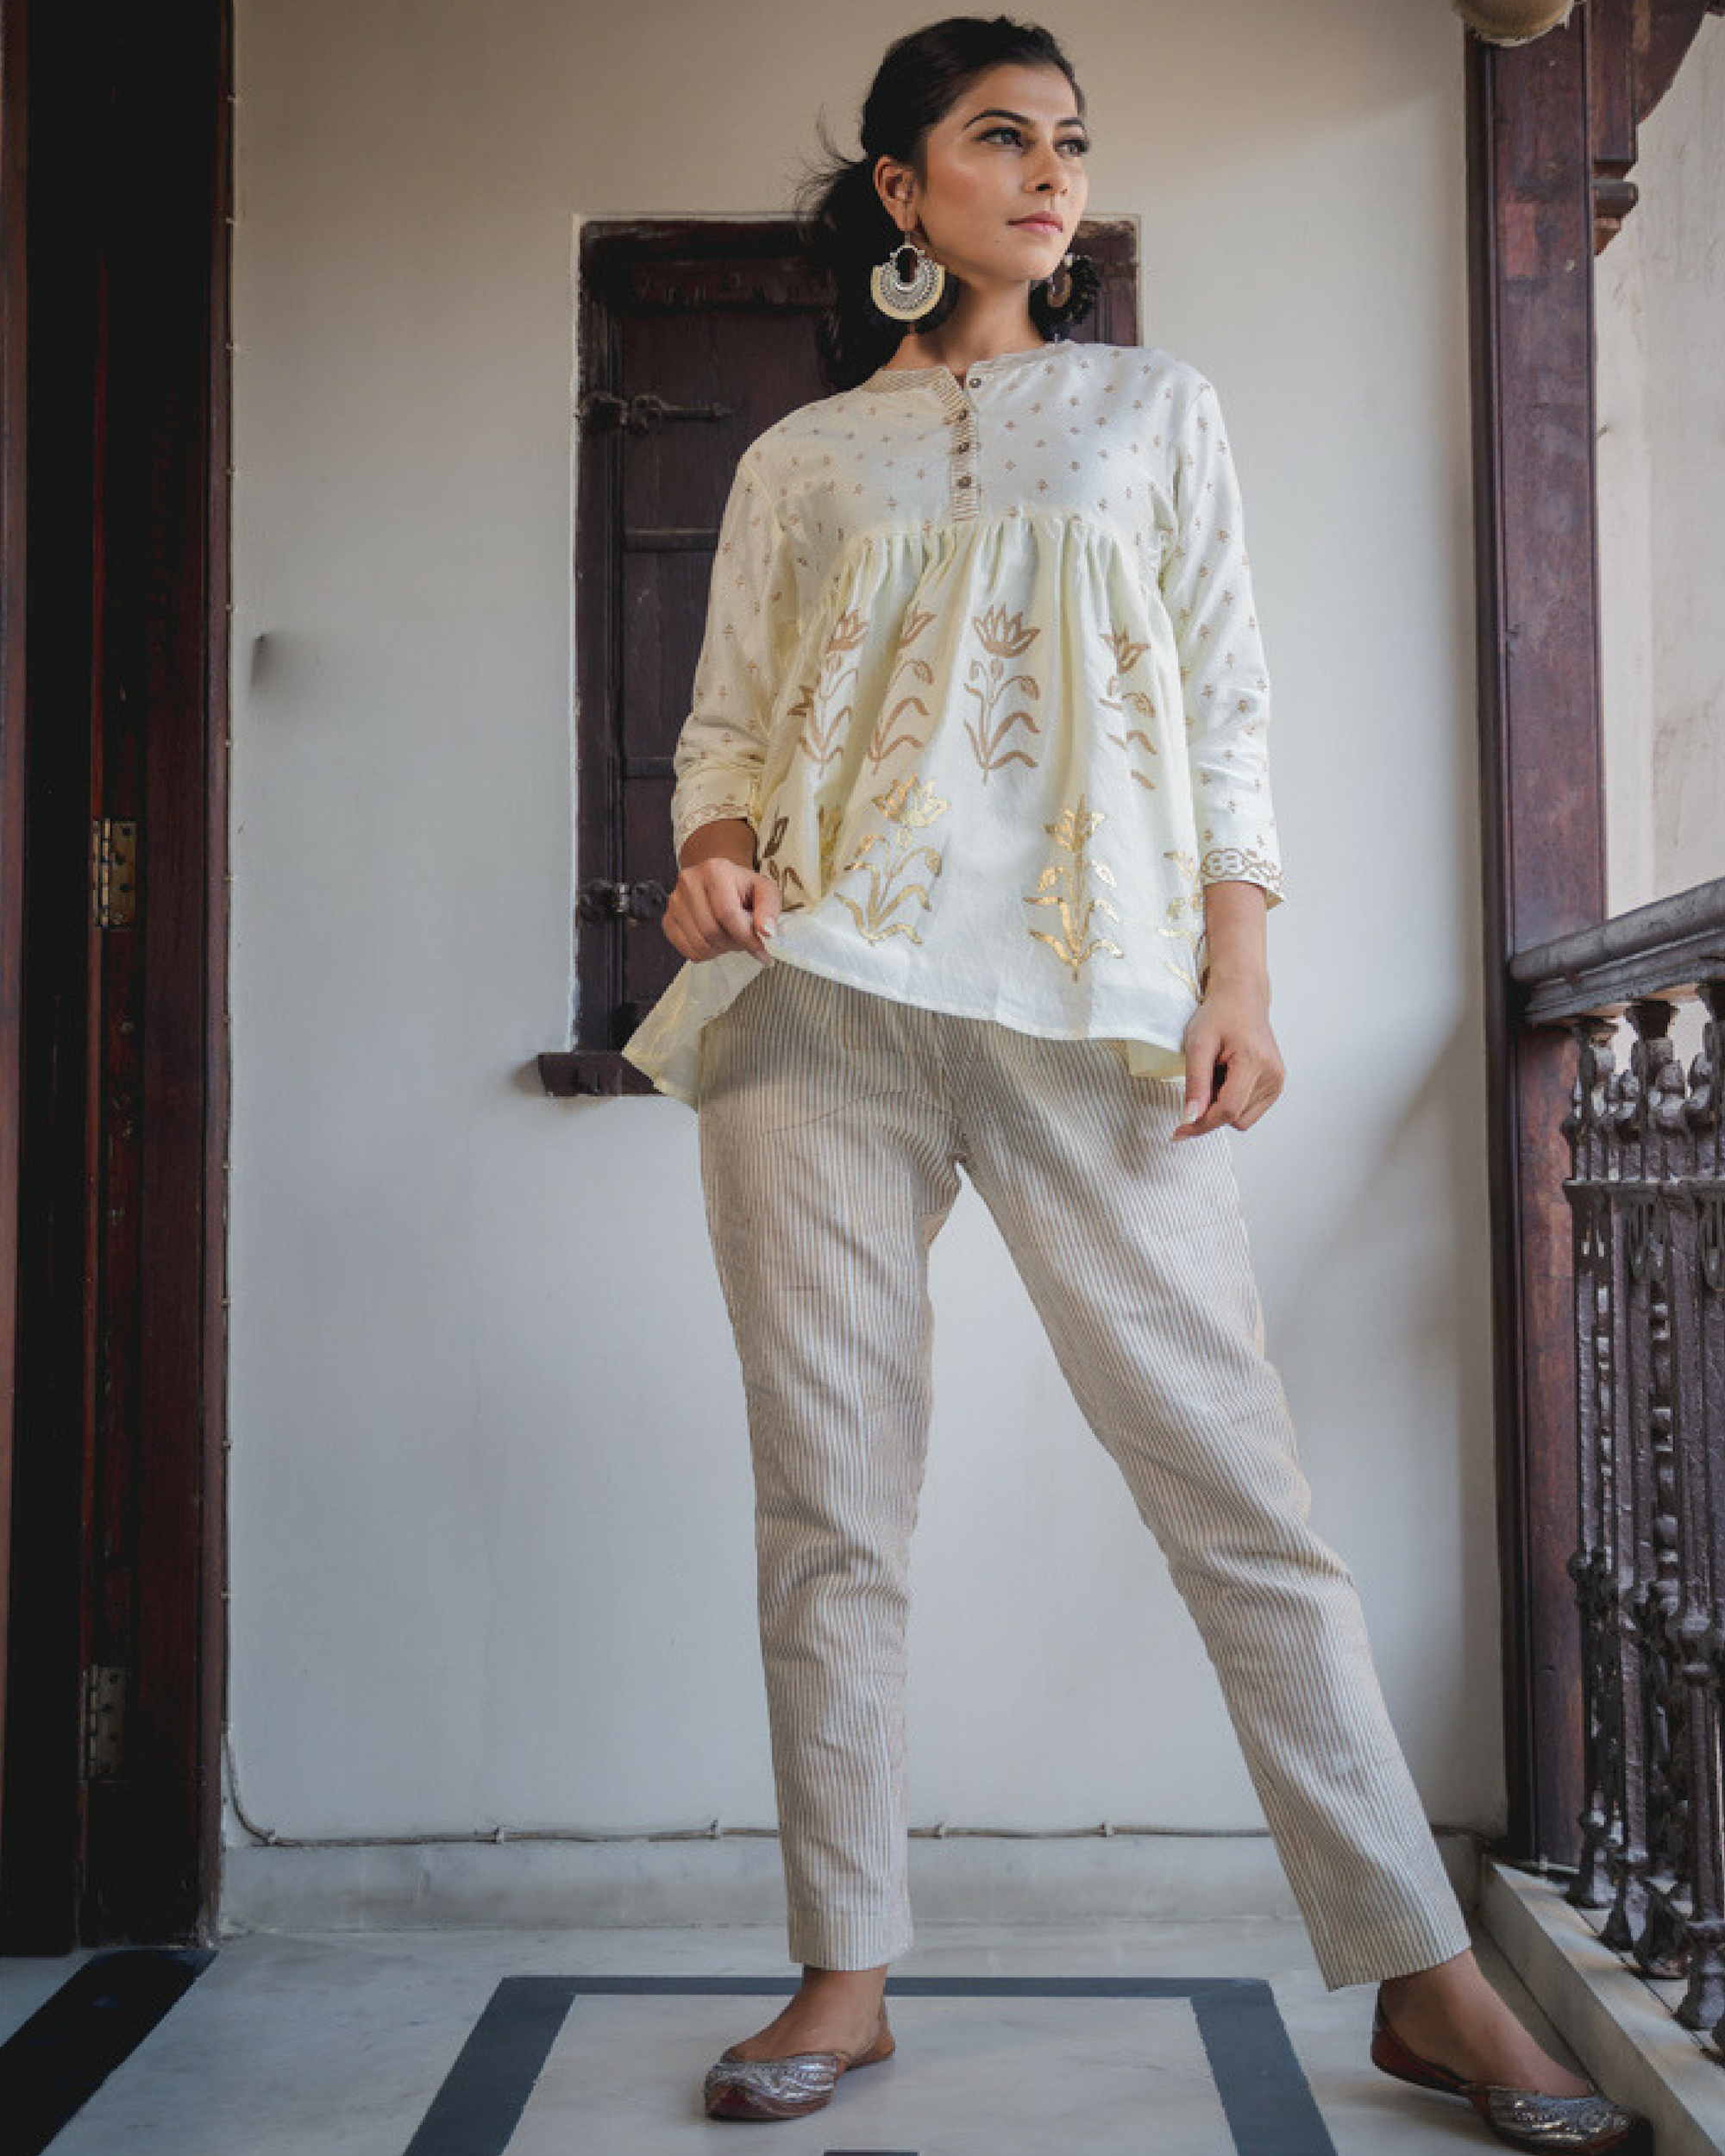 Azmat phool top with pants